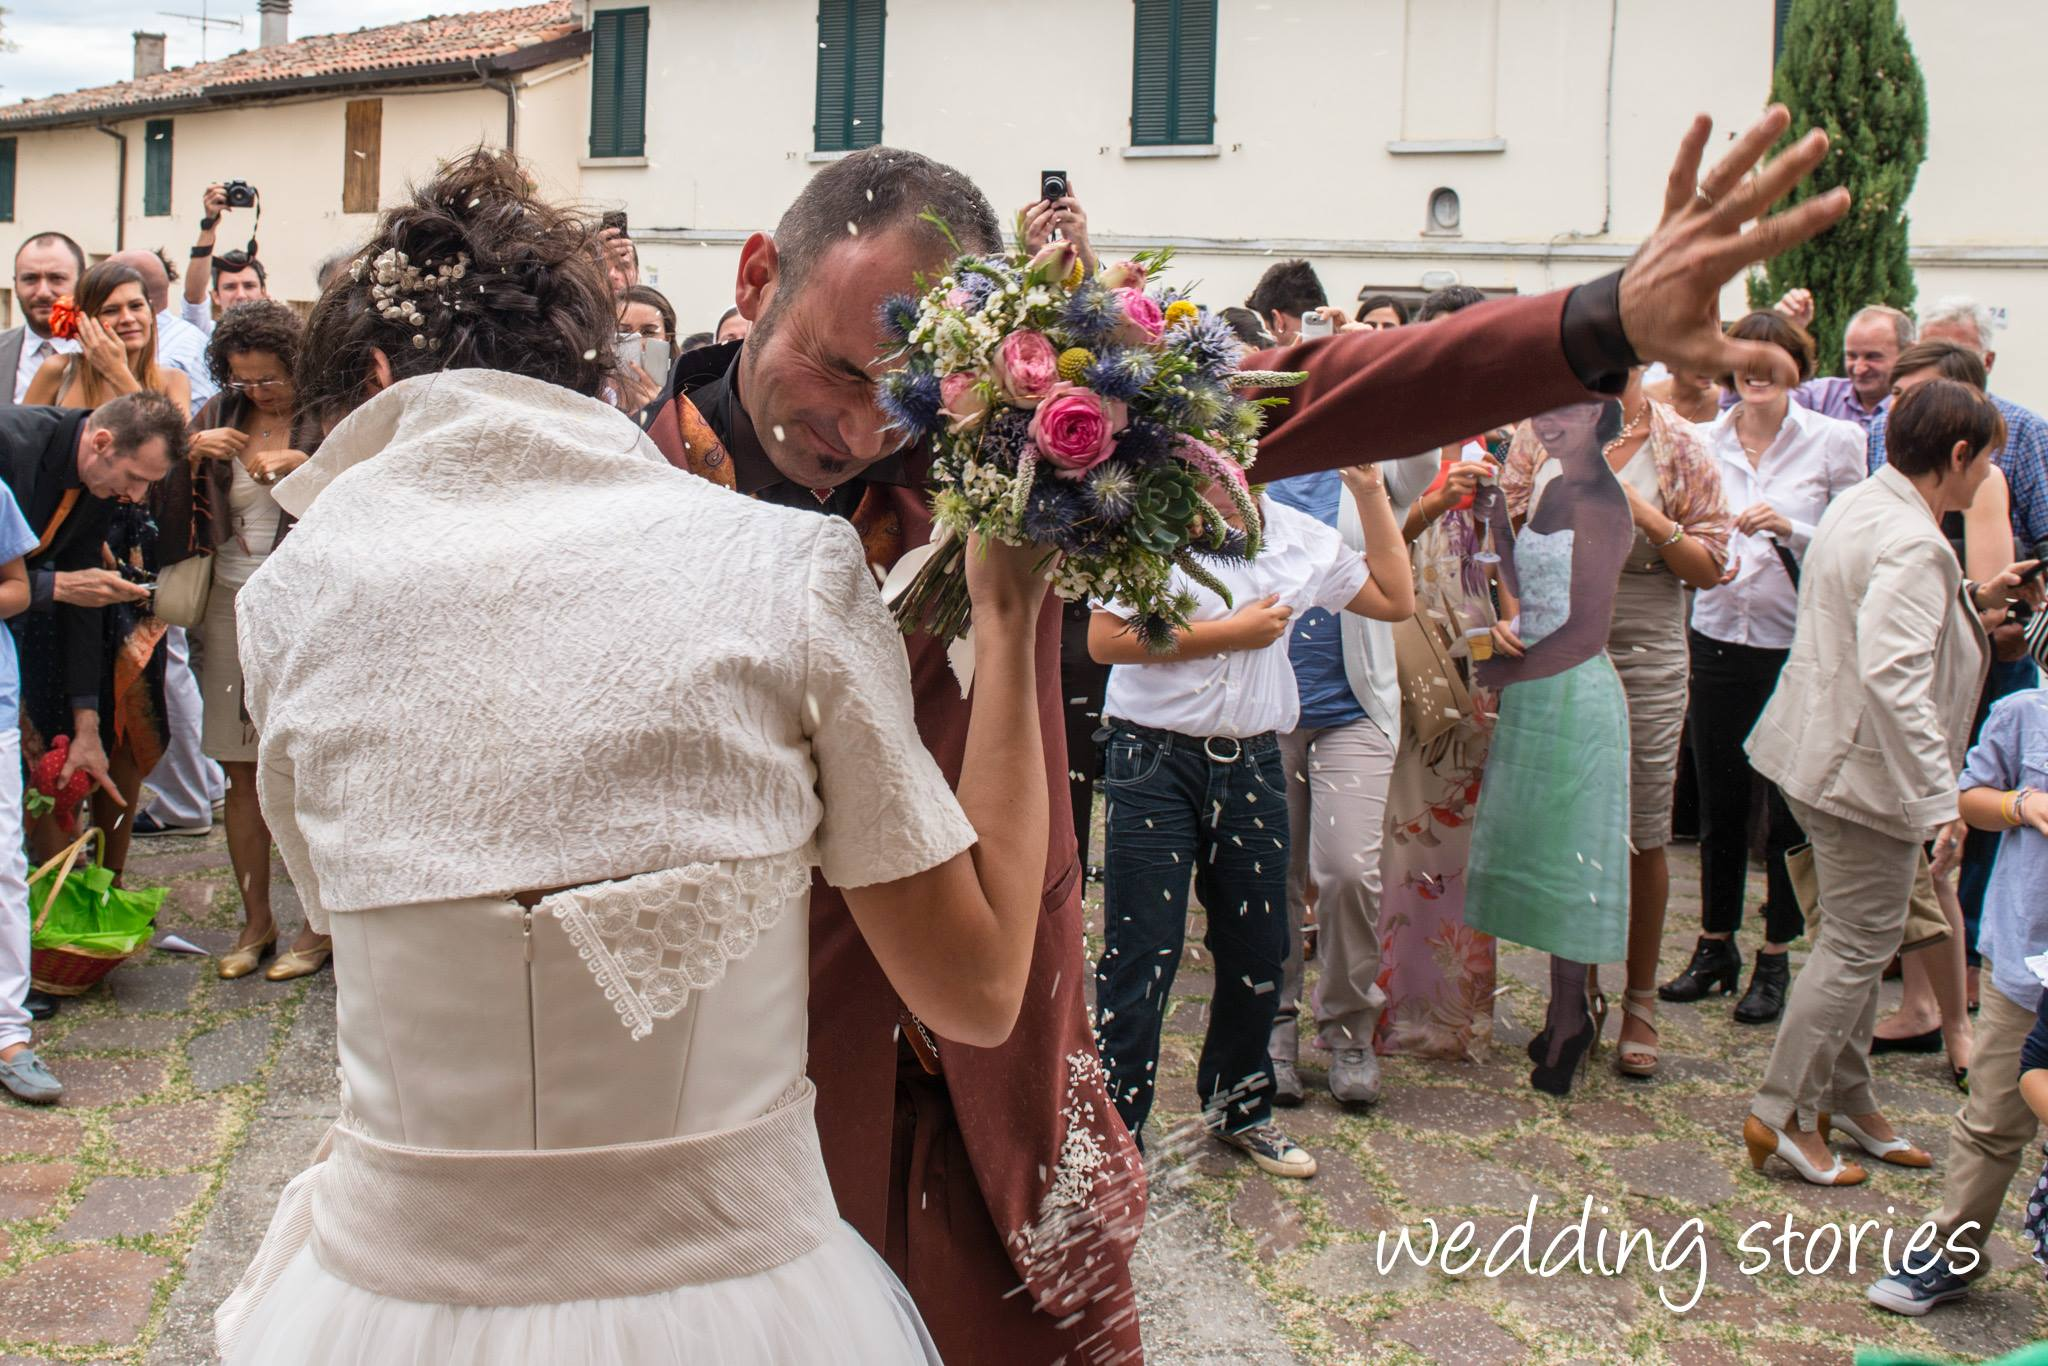 http://lnx.mirkone.it/wp-content/uploads/2015/07/mirk_ONE-fotografo-matrimonio-00866.jpg